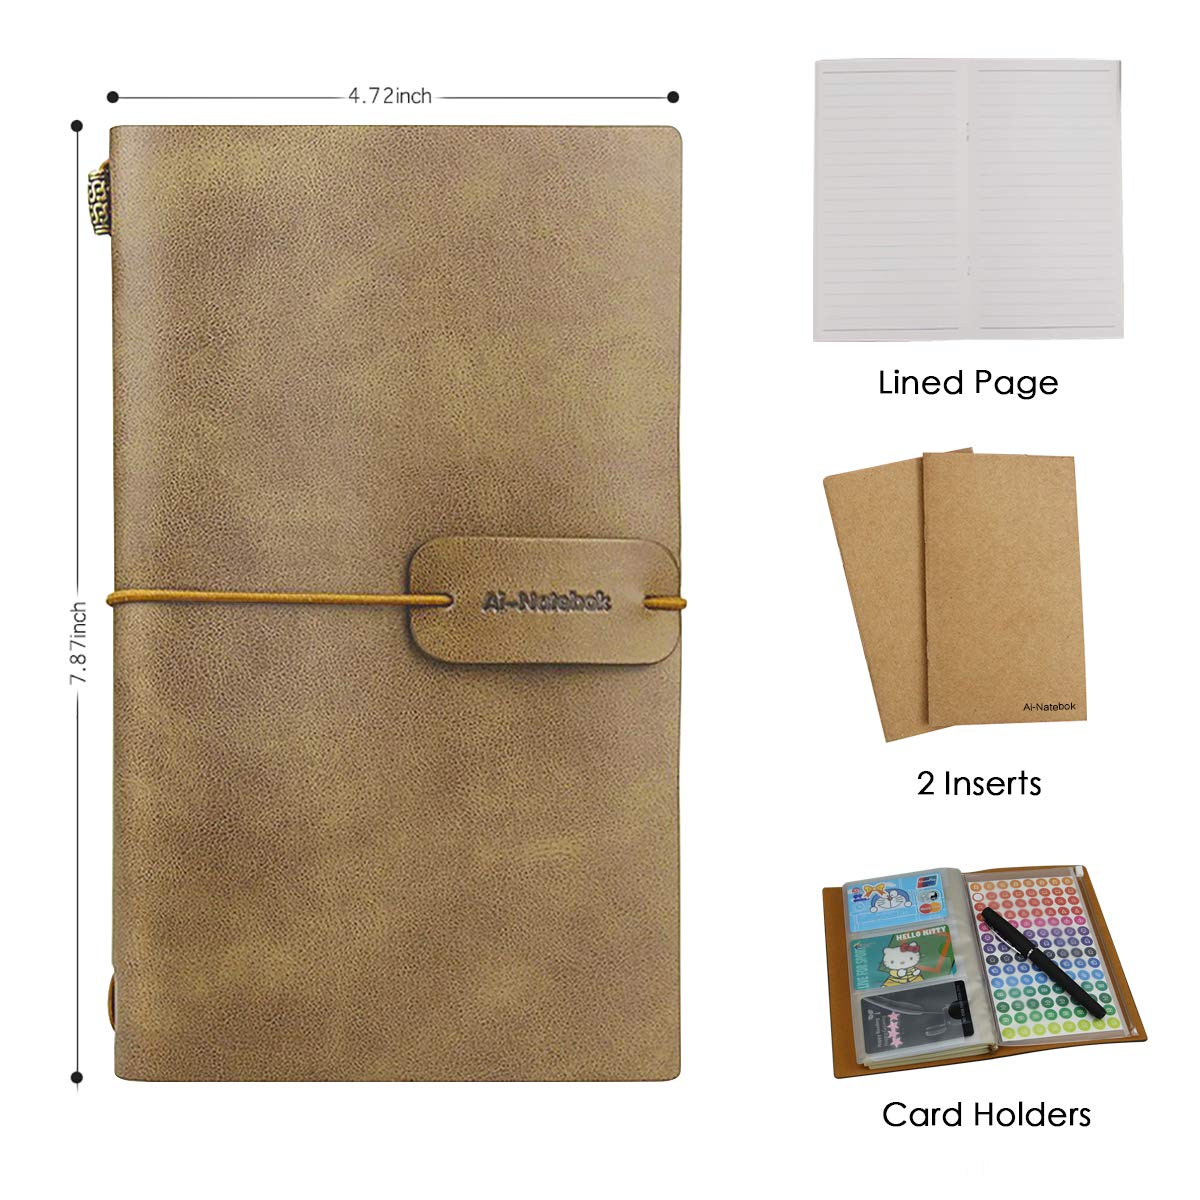 Planners 2019 Retro Vintage Notebook Password Book Planner Office Lady Privacy Protection Stationery Be Novel In Design